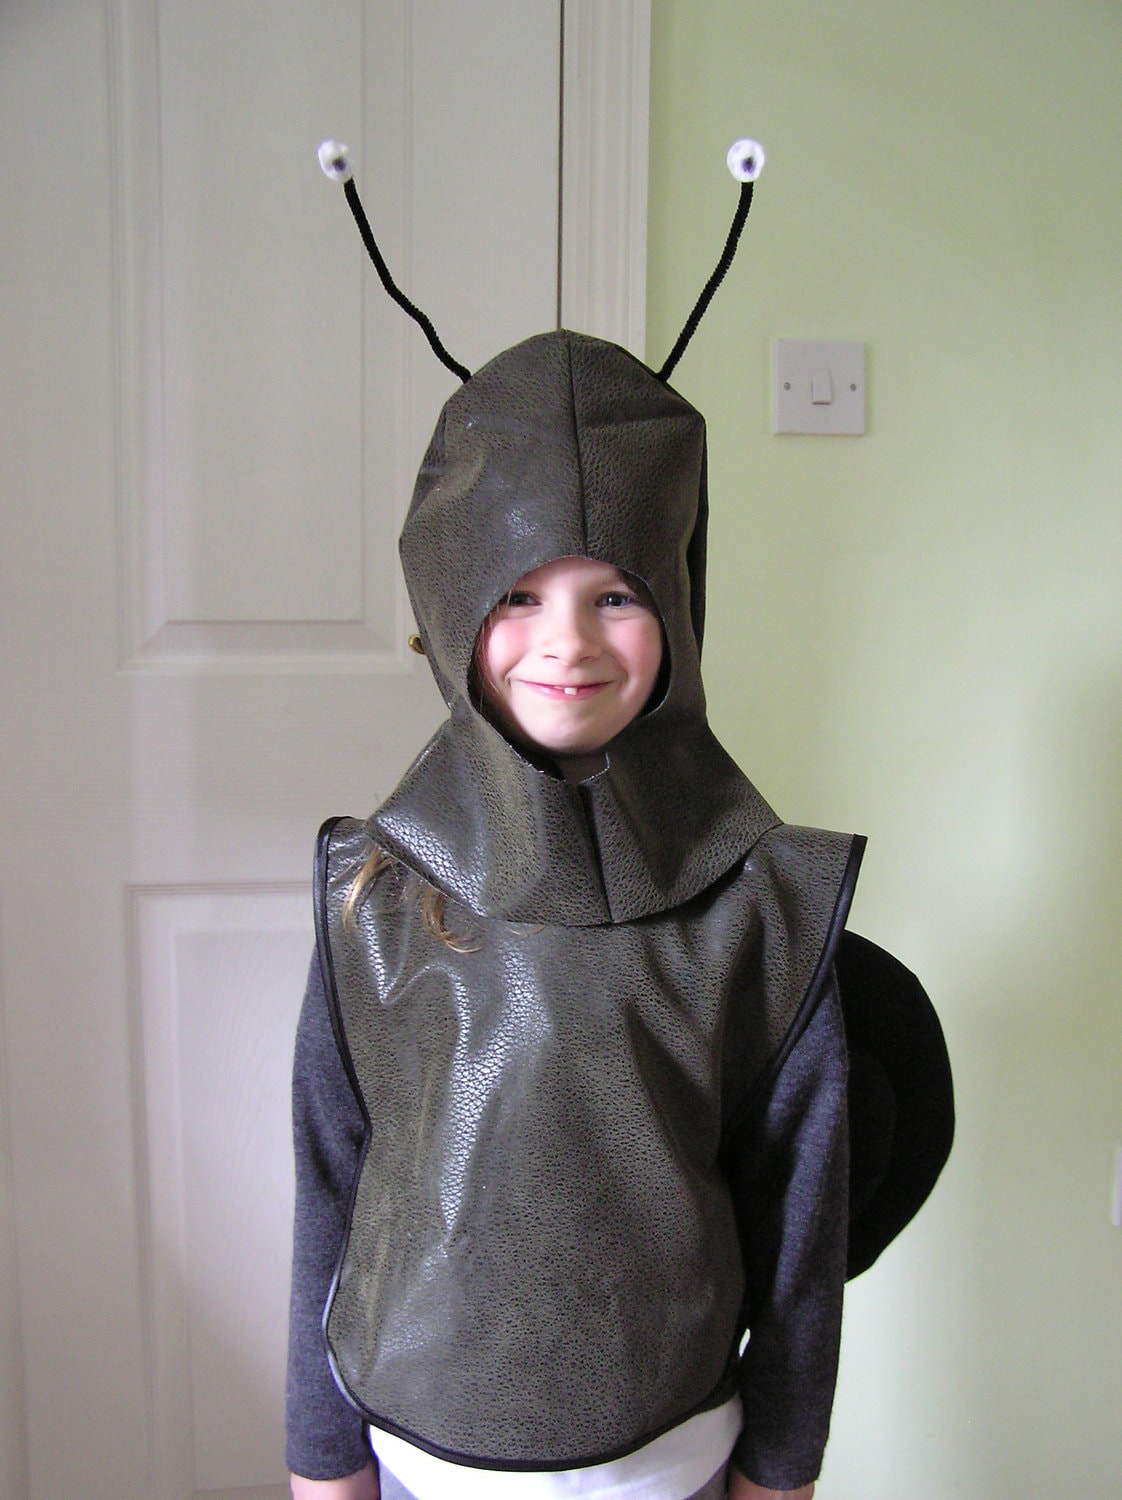 Snail Costume For A Child Turbo See My Coiled By